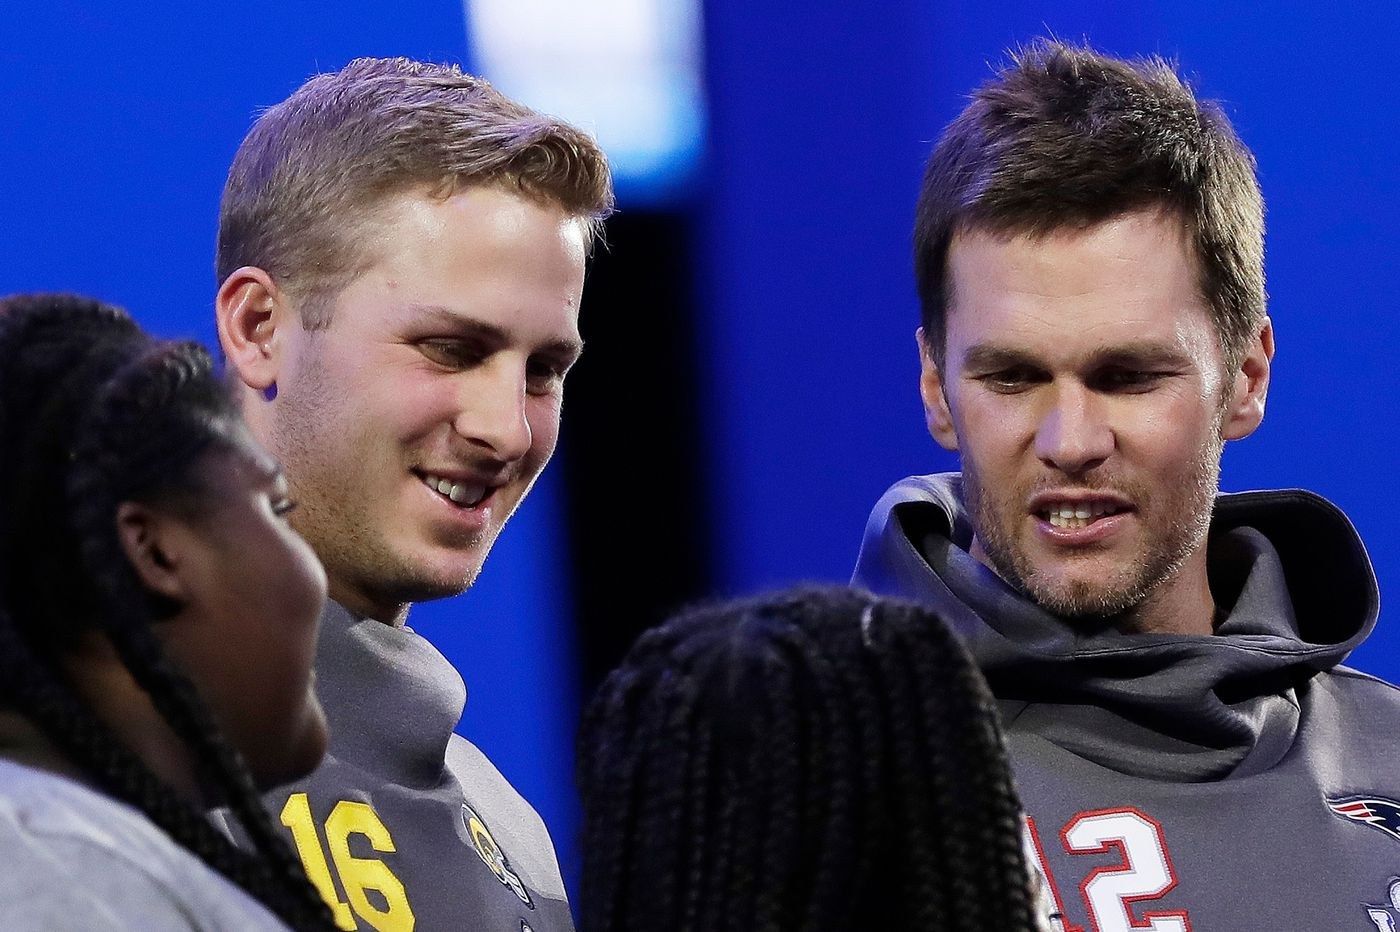 NFL Network Accidentally Runs Patriots Celebratory Super Bowl Ad